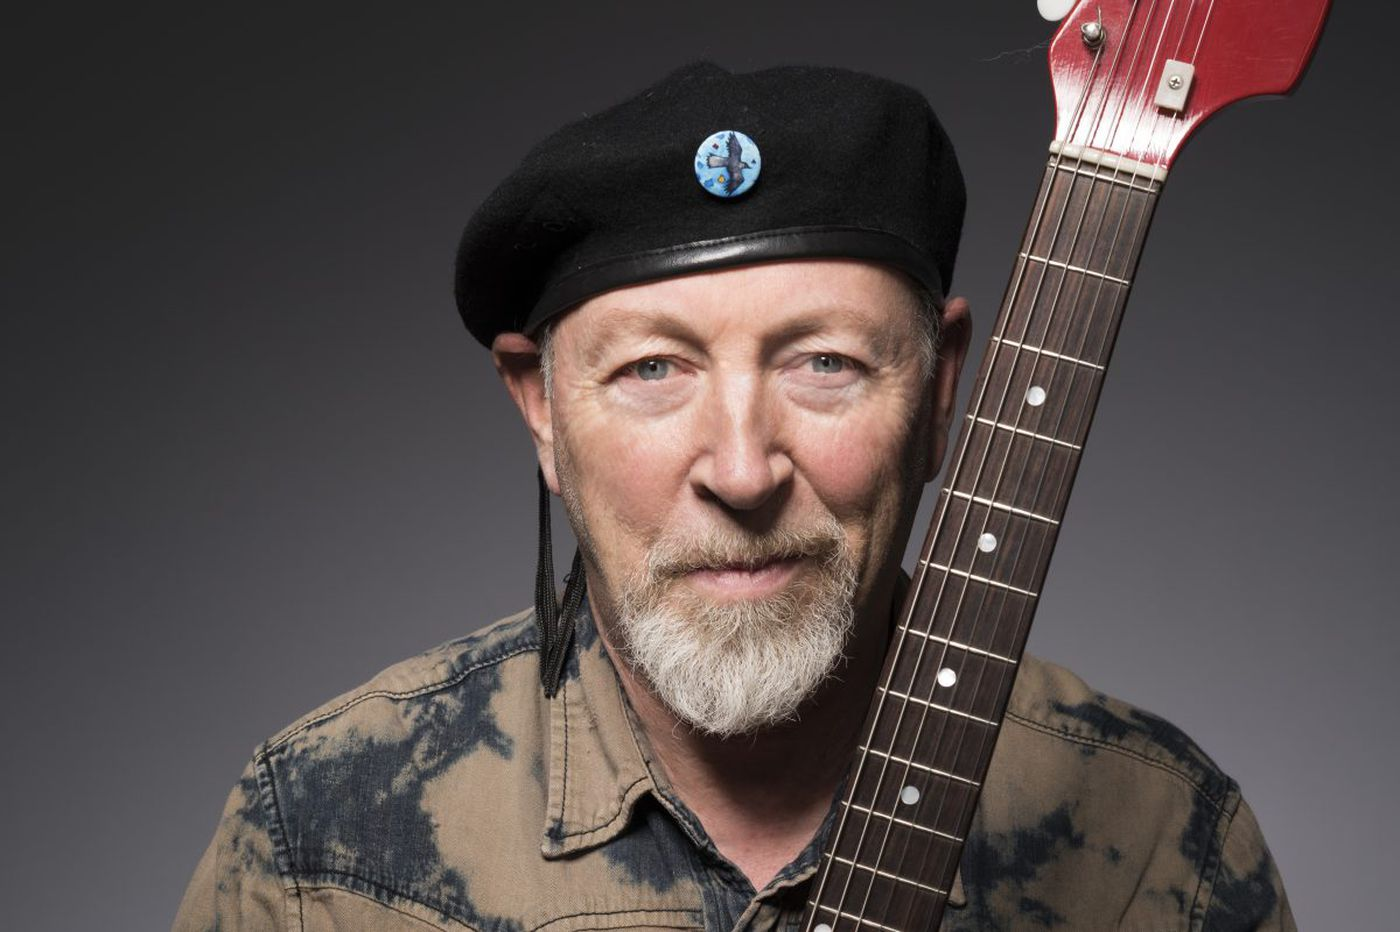 Richard Thompson recorded albums to sell out his live shows. Turns out, people actually wanted to buy them